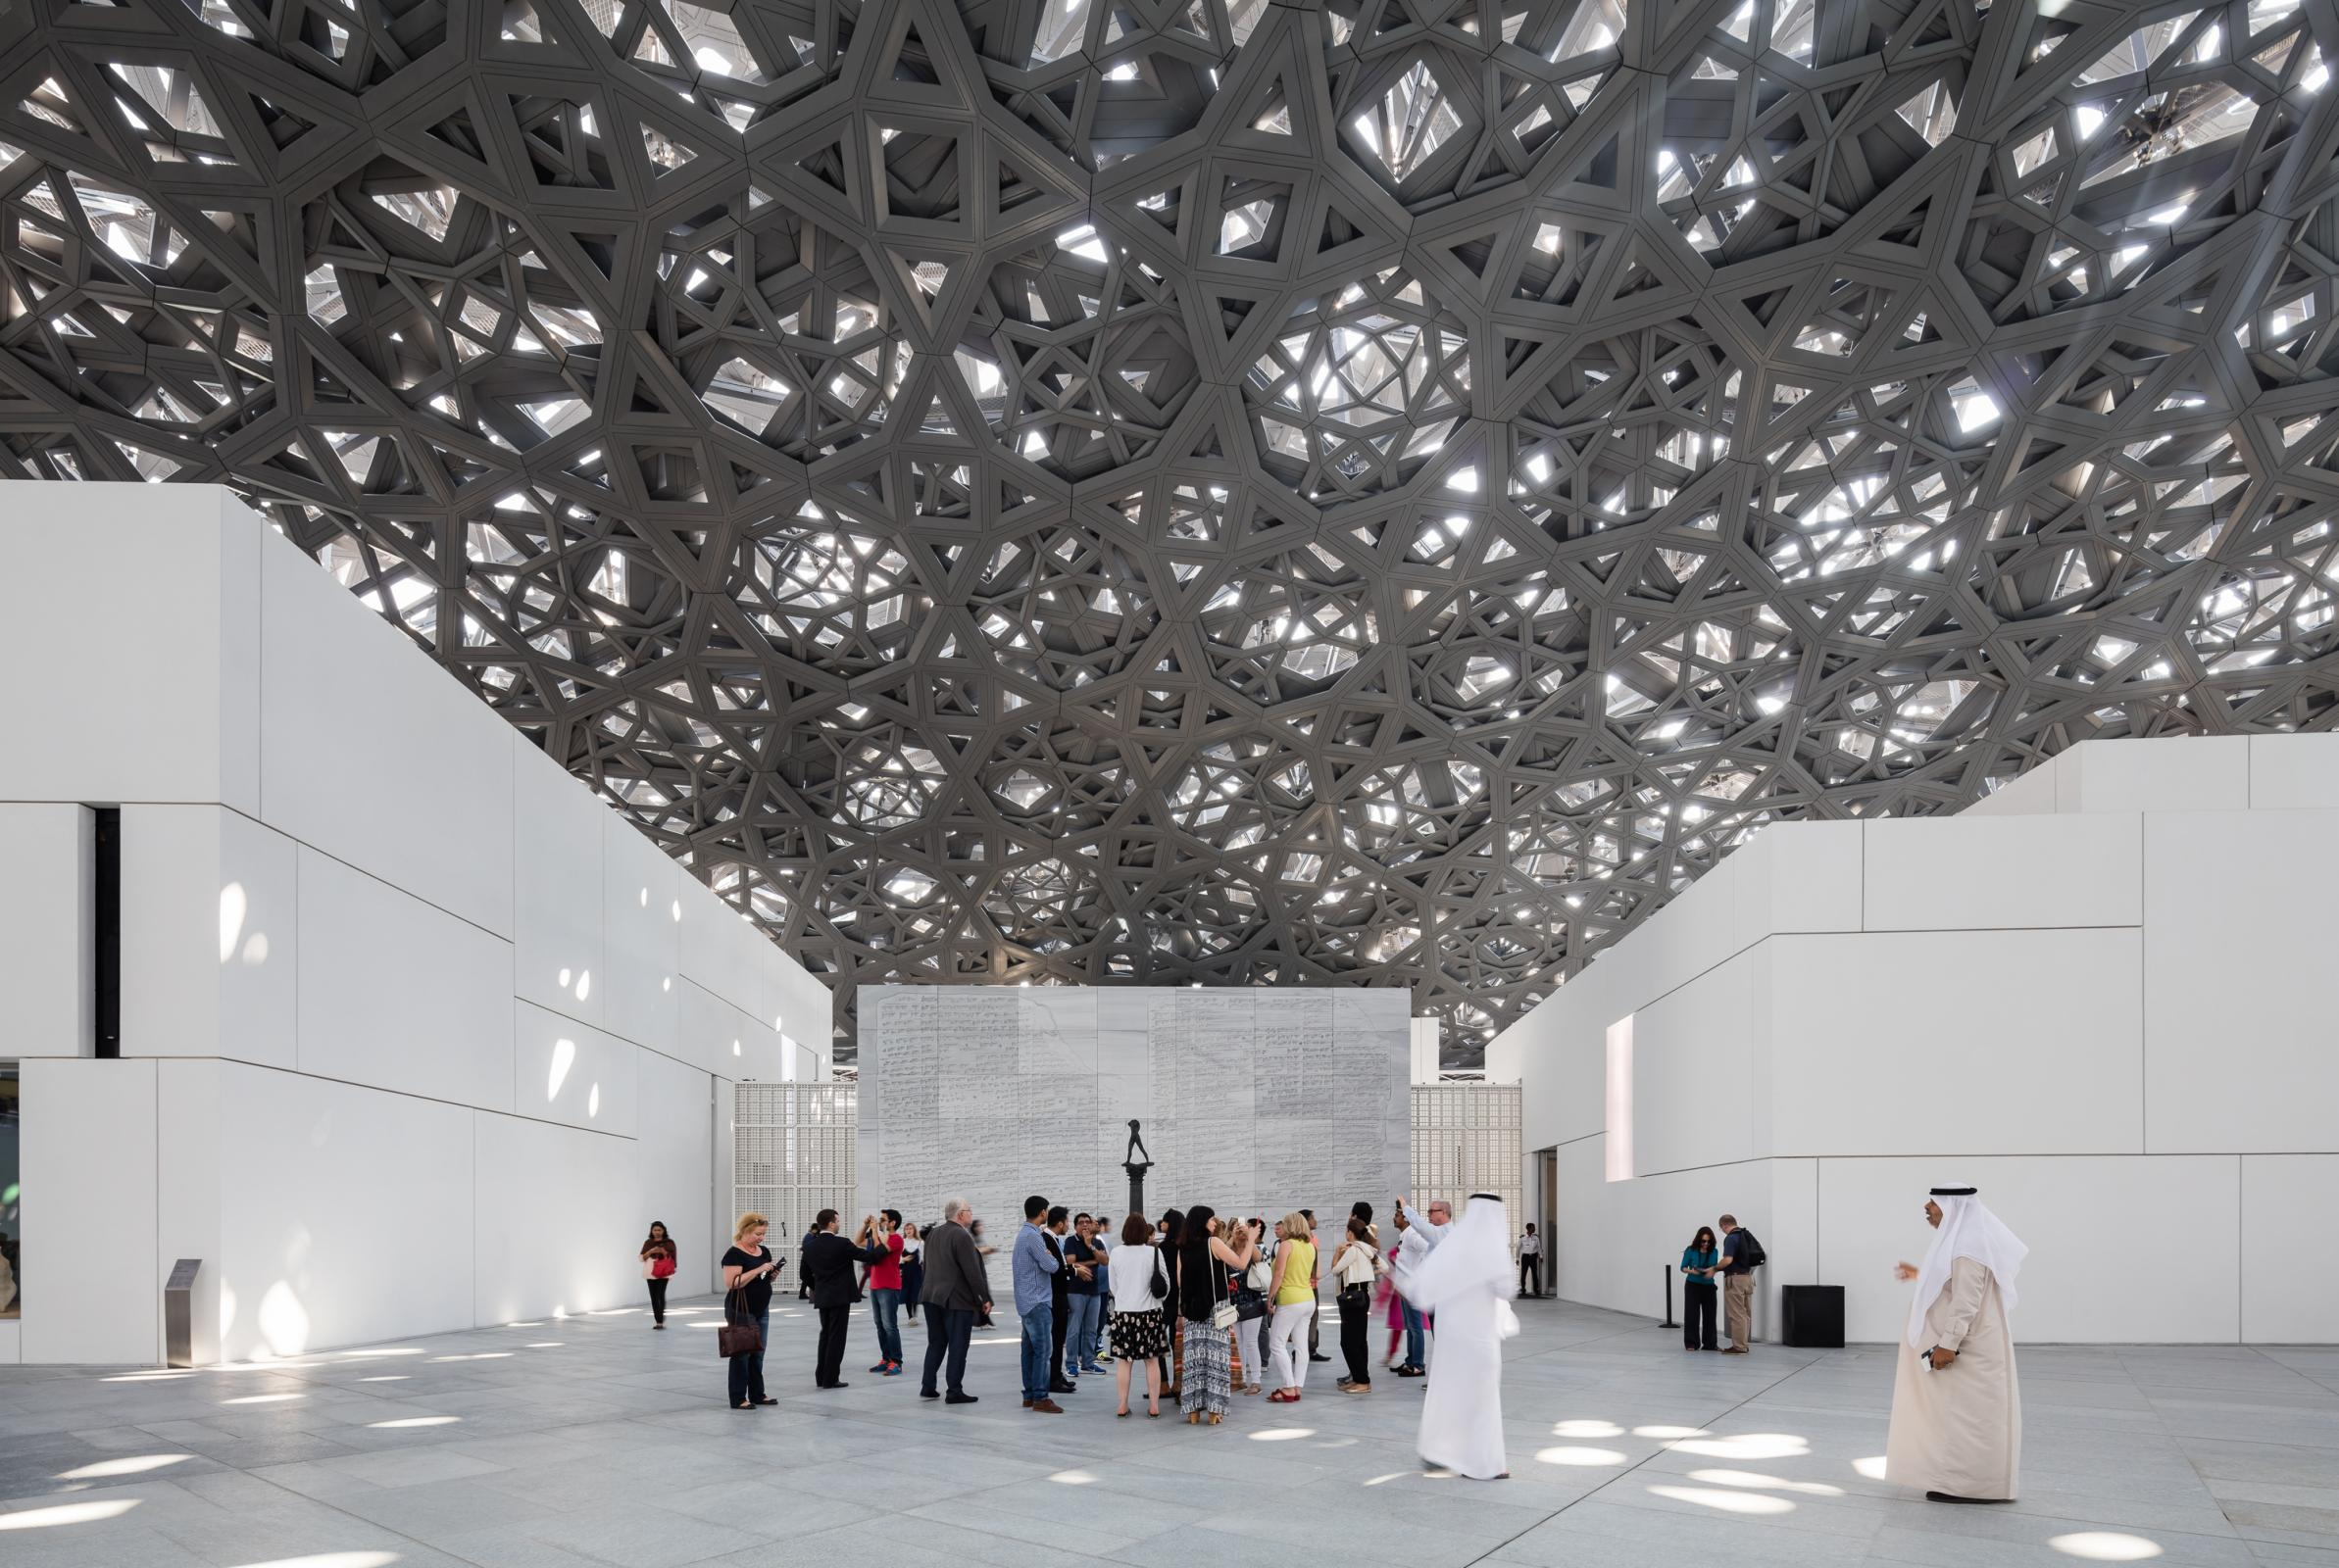 Photograph of Louvre Abu Dhabi, designed by Ateliers Jean Nouvel and located in Abu Dhabi, United Arab Emirates